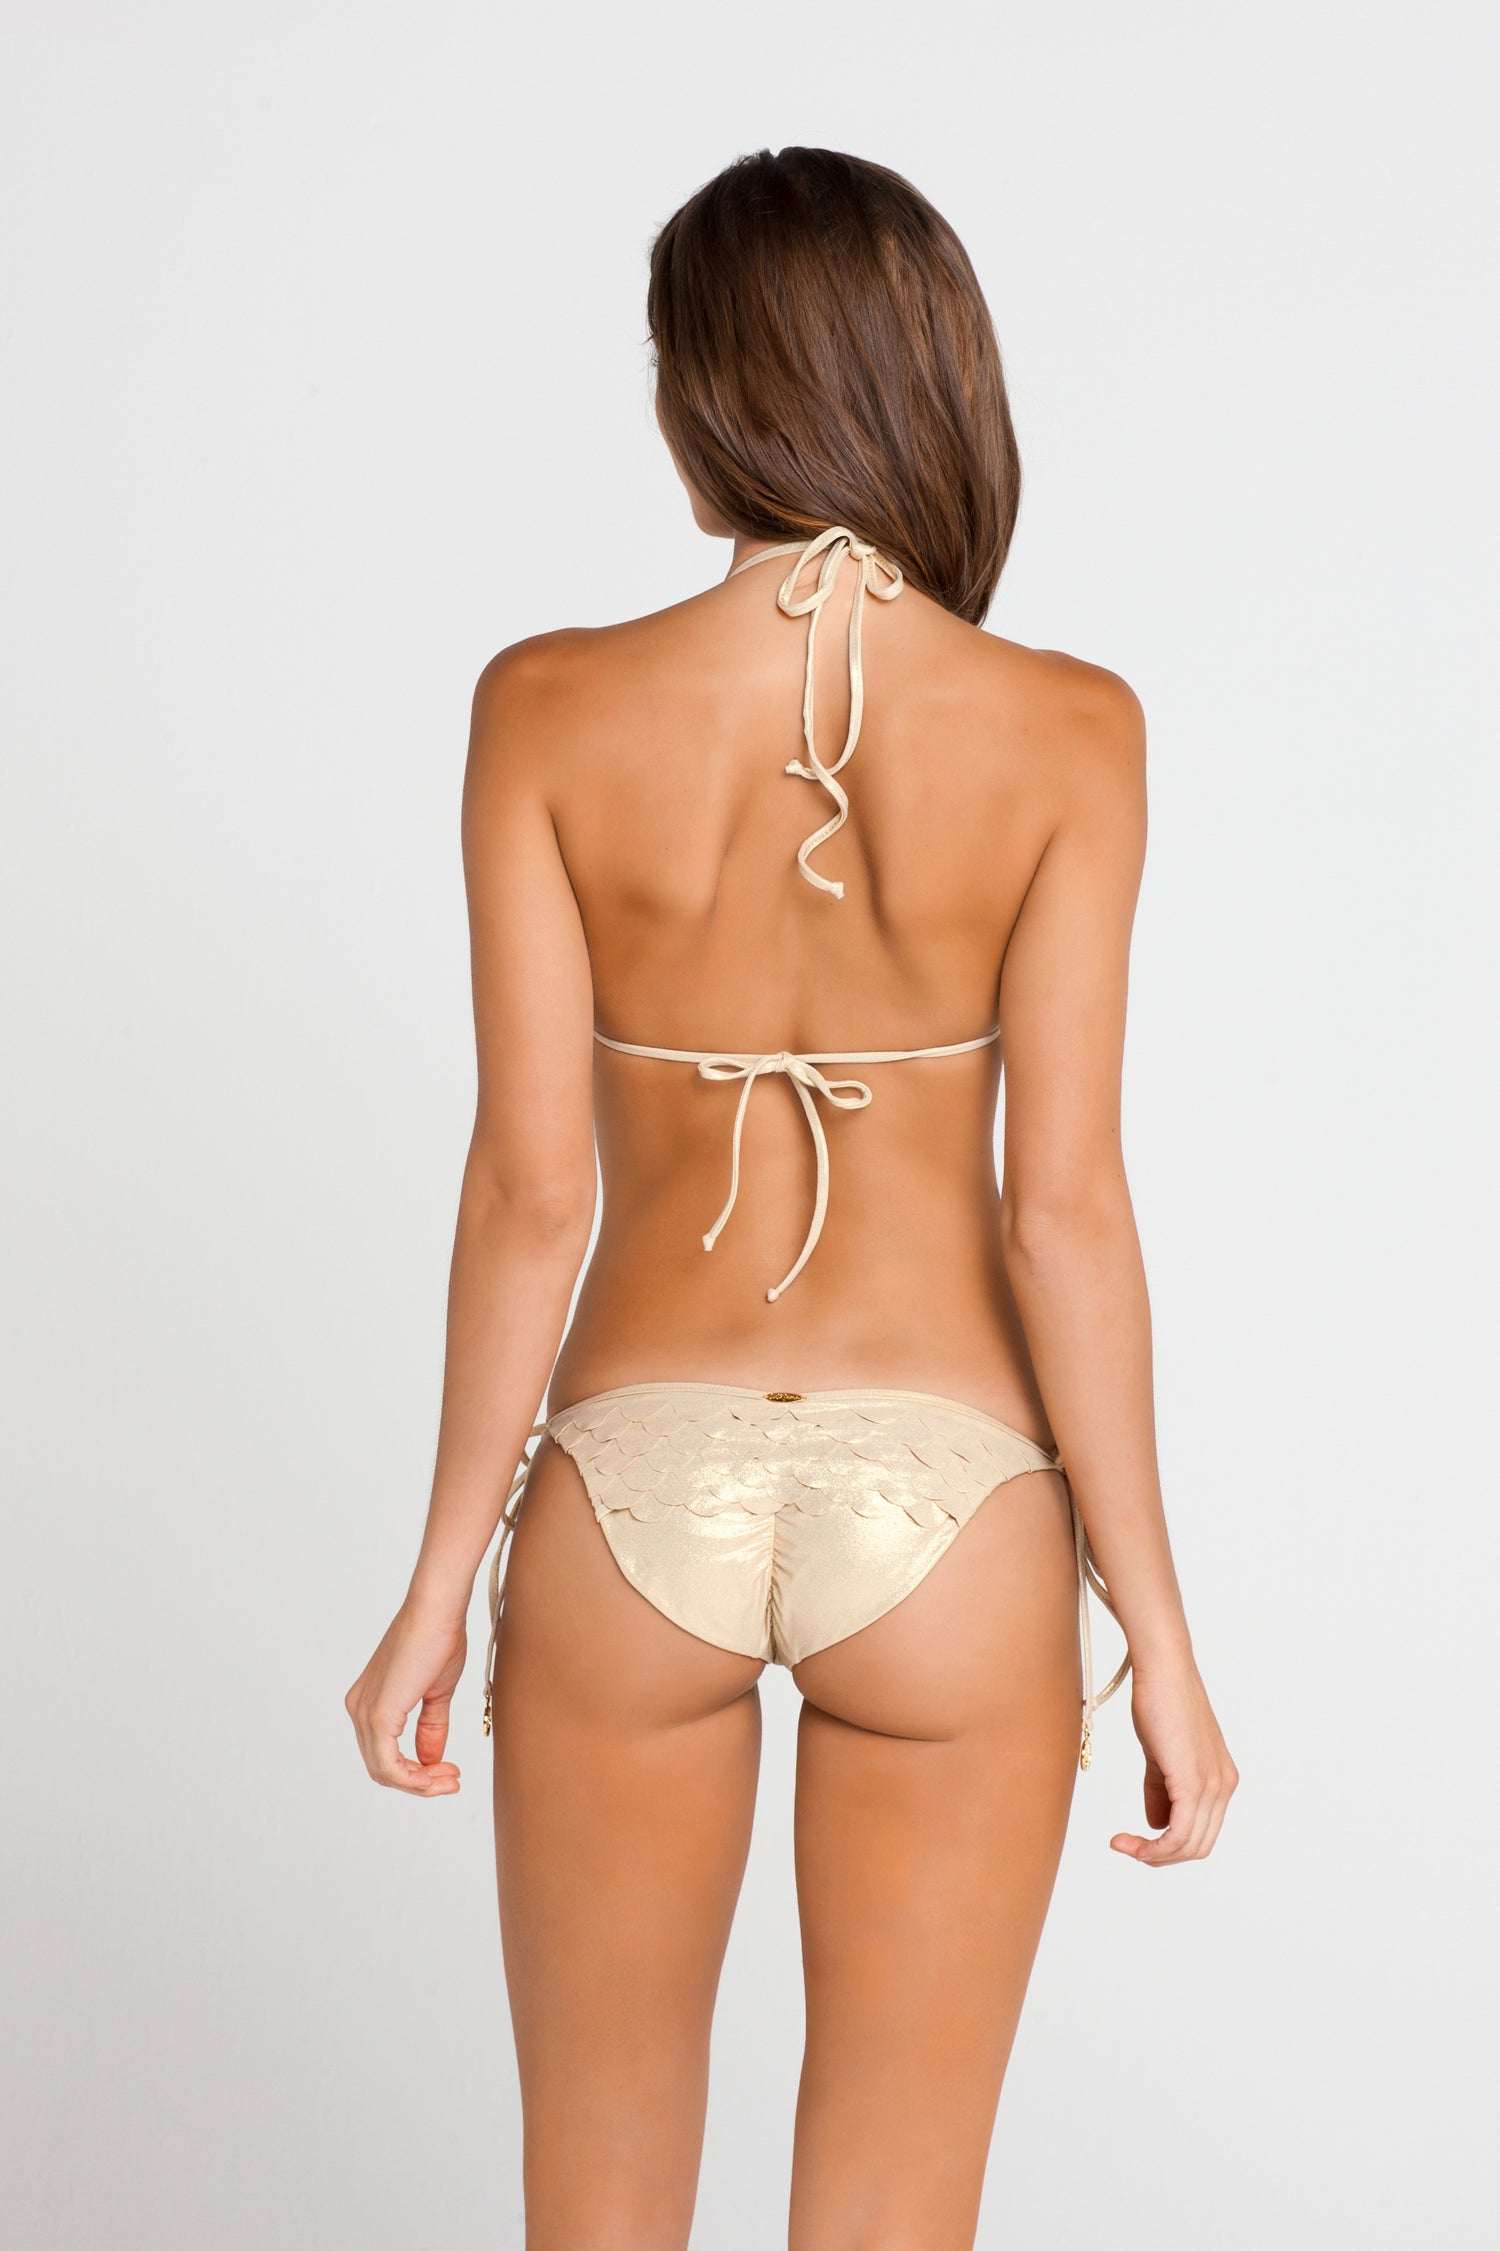 SI SOY SIRENA - Scalloped Triangle Top & Scalloped Back Tie Side Ruched Full Bottom • Gold Rush